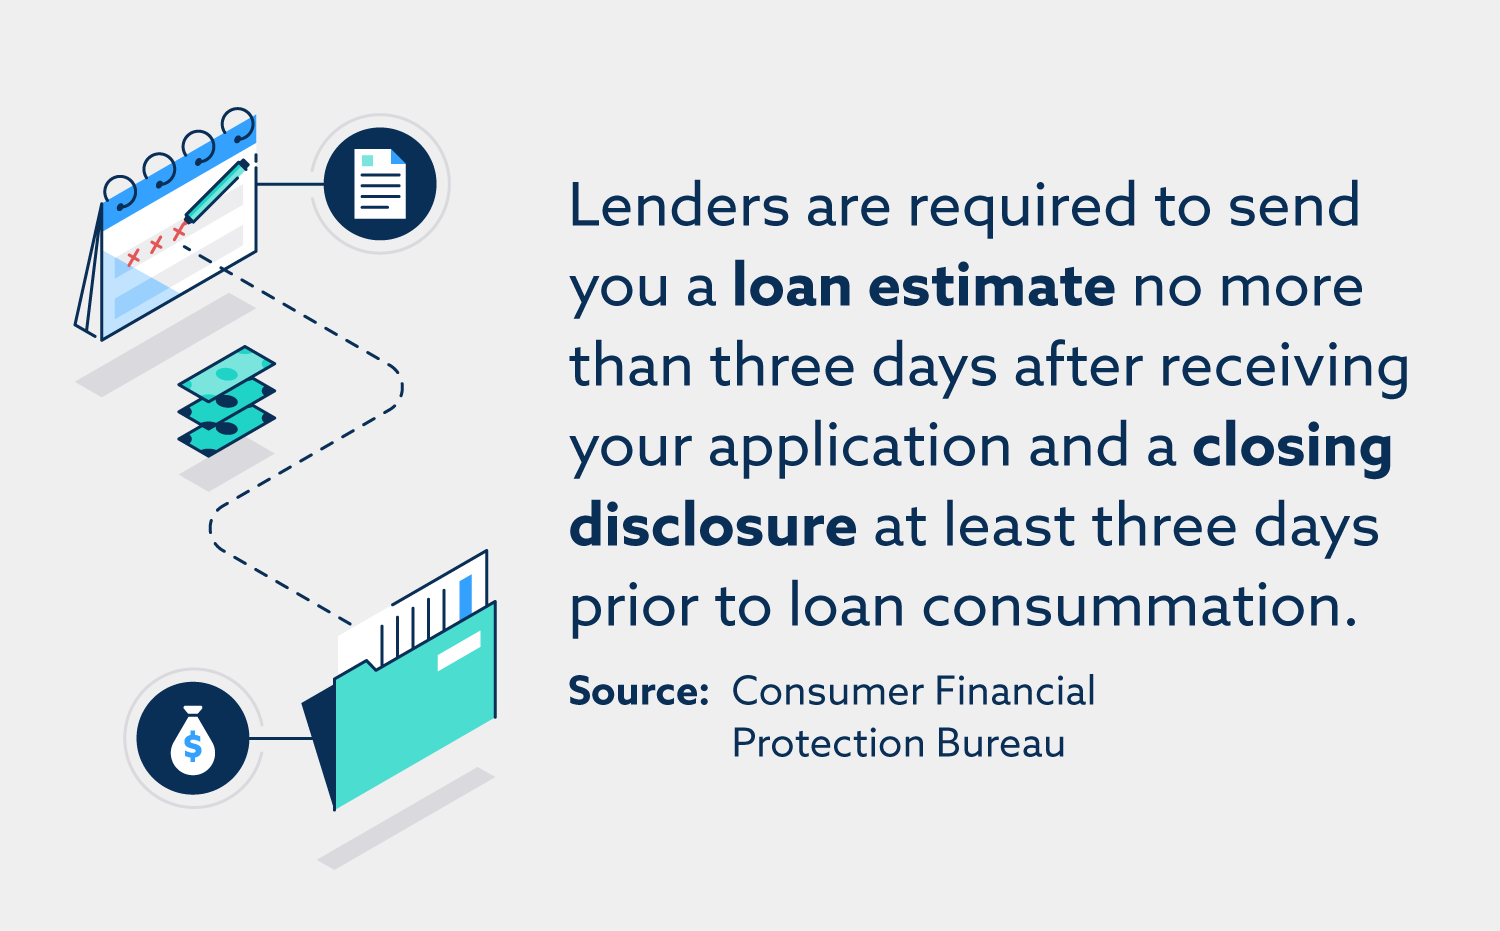 Lenders are required to send you a loan estimate no more than three days after receiving your application and a closing disclosure at least three days prior to loan consummation.